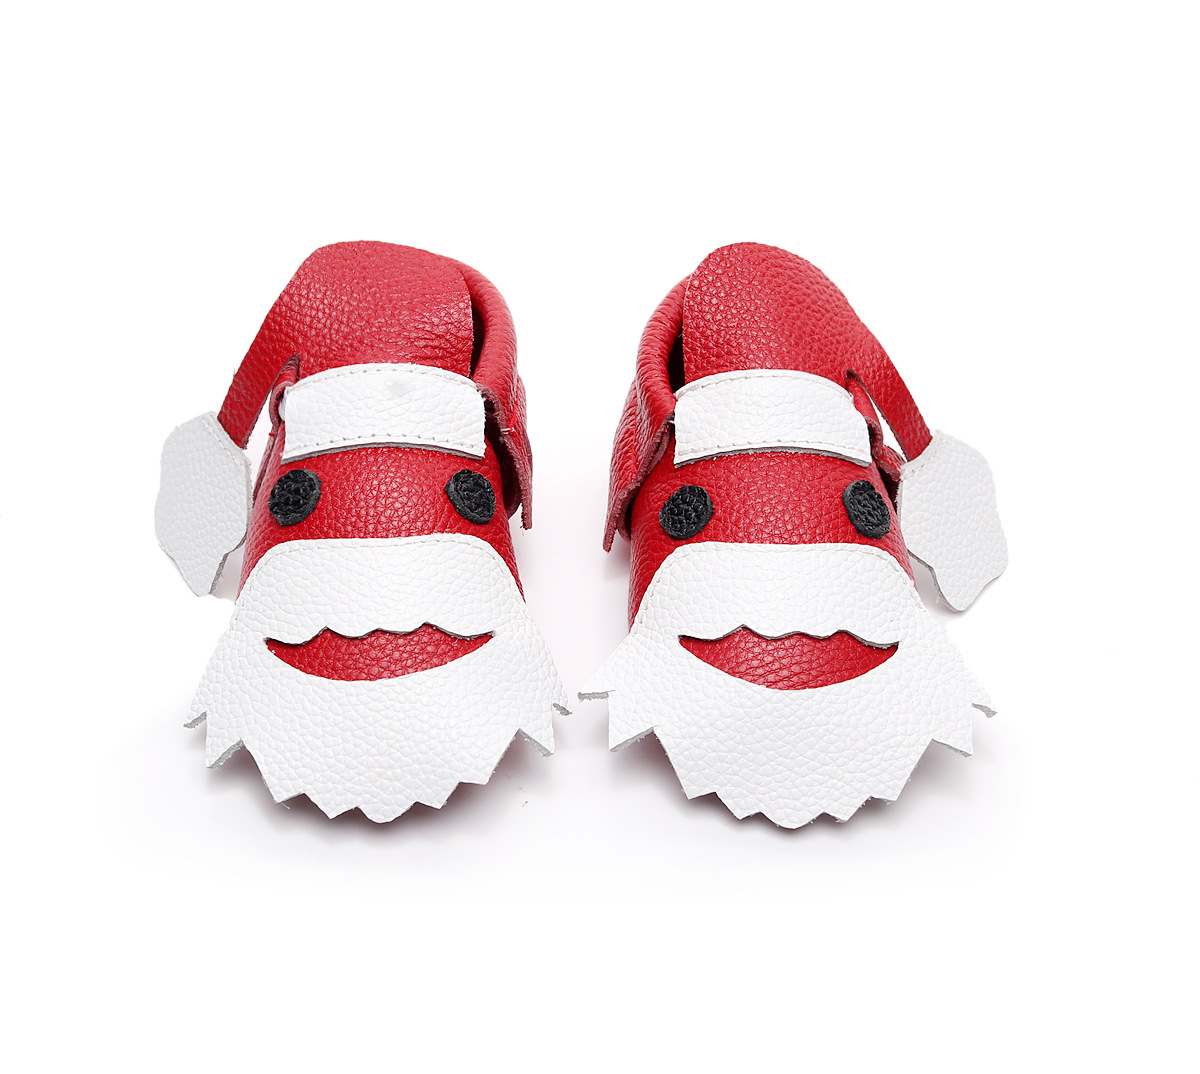 Santa Claus Baby Shoes Genuine Leather Baby Moccasins Cute Cartoon Toddler Shoes Christmas Gift